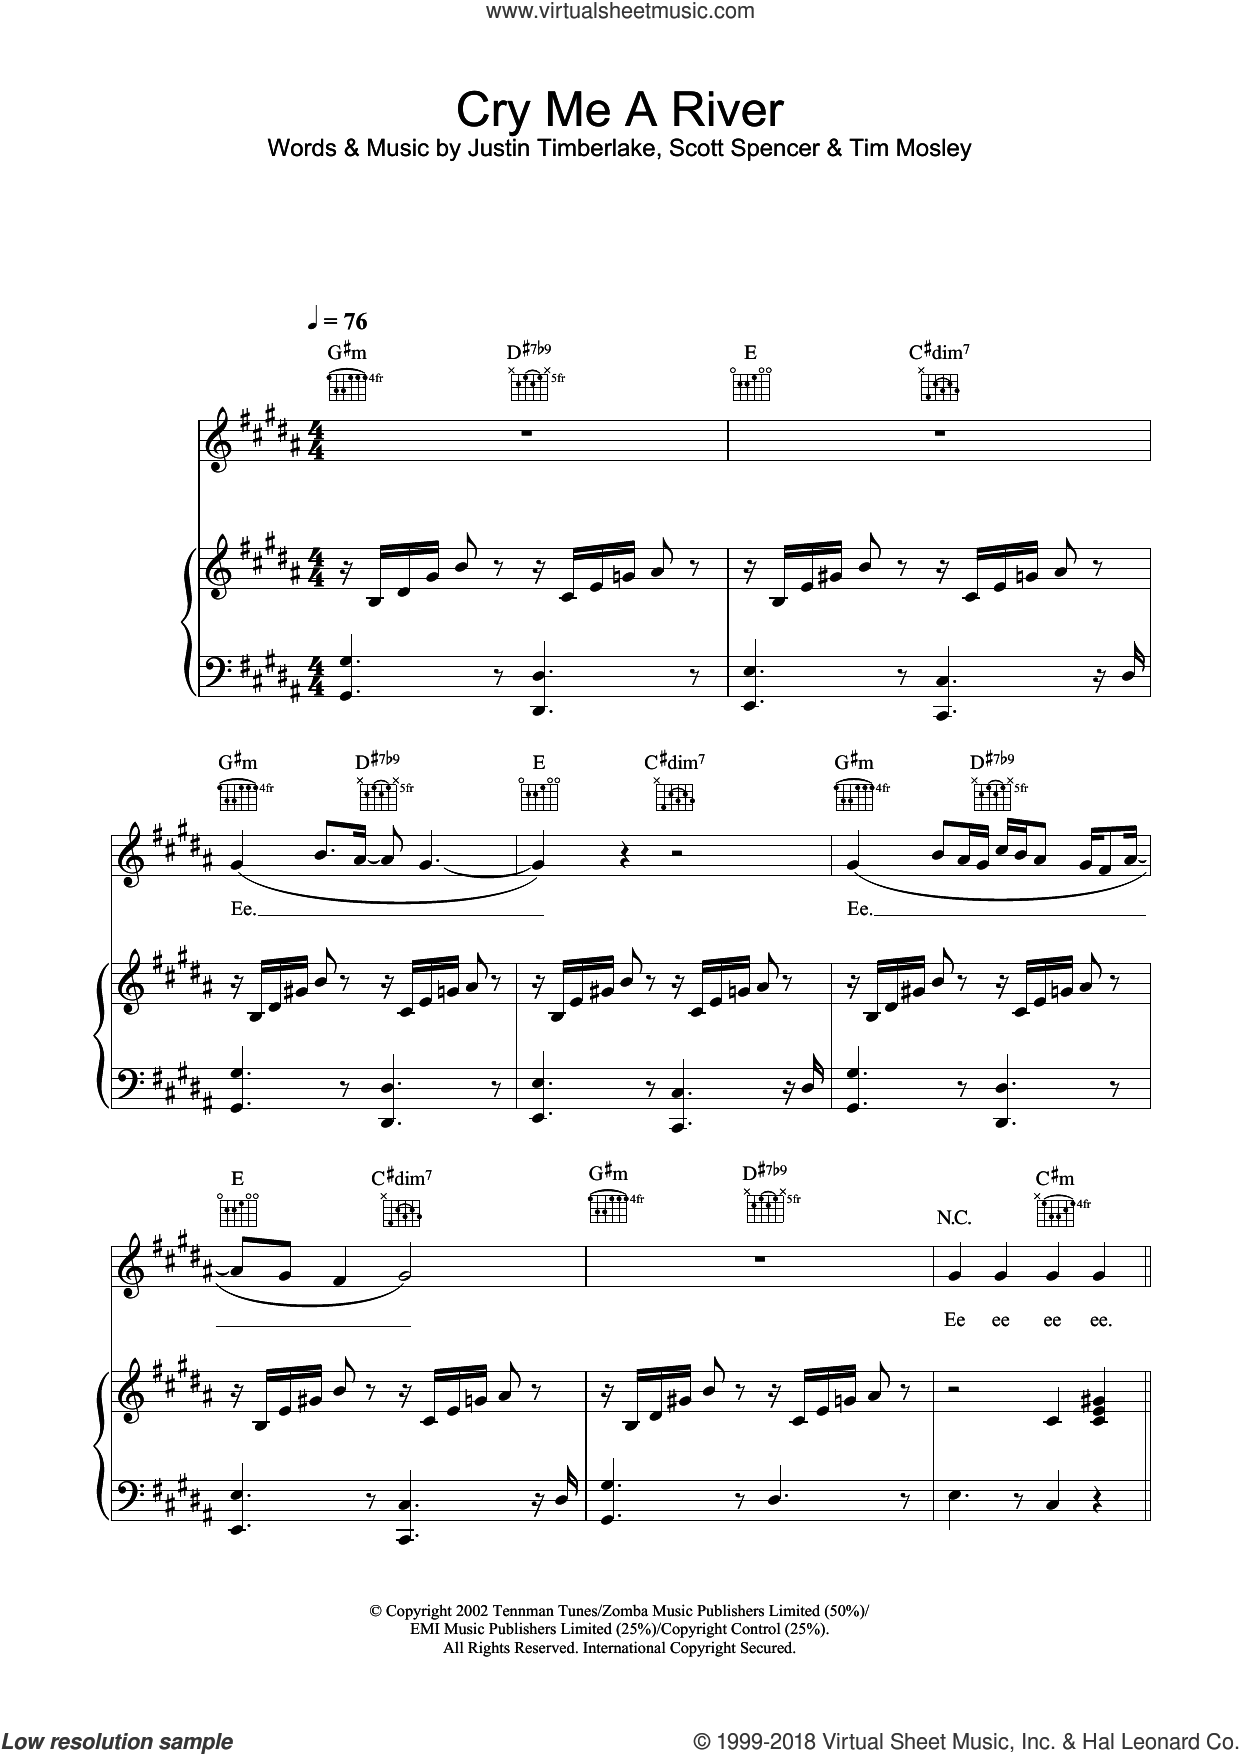 Cry Me A River sheet music for voice, piano or guitar by Justin Timberlake